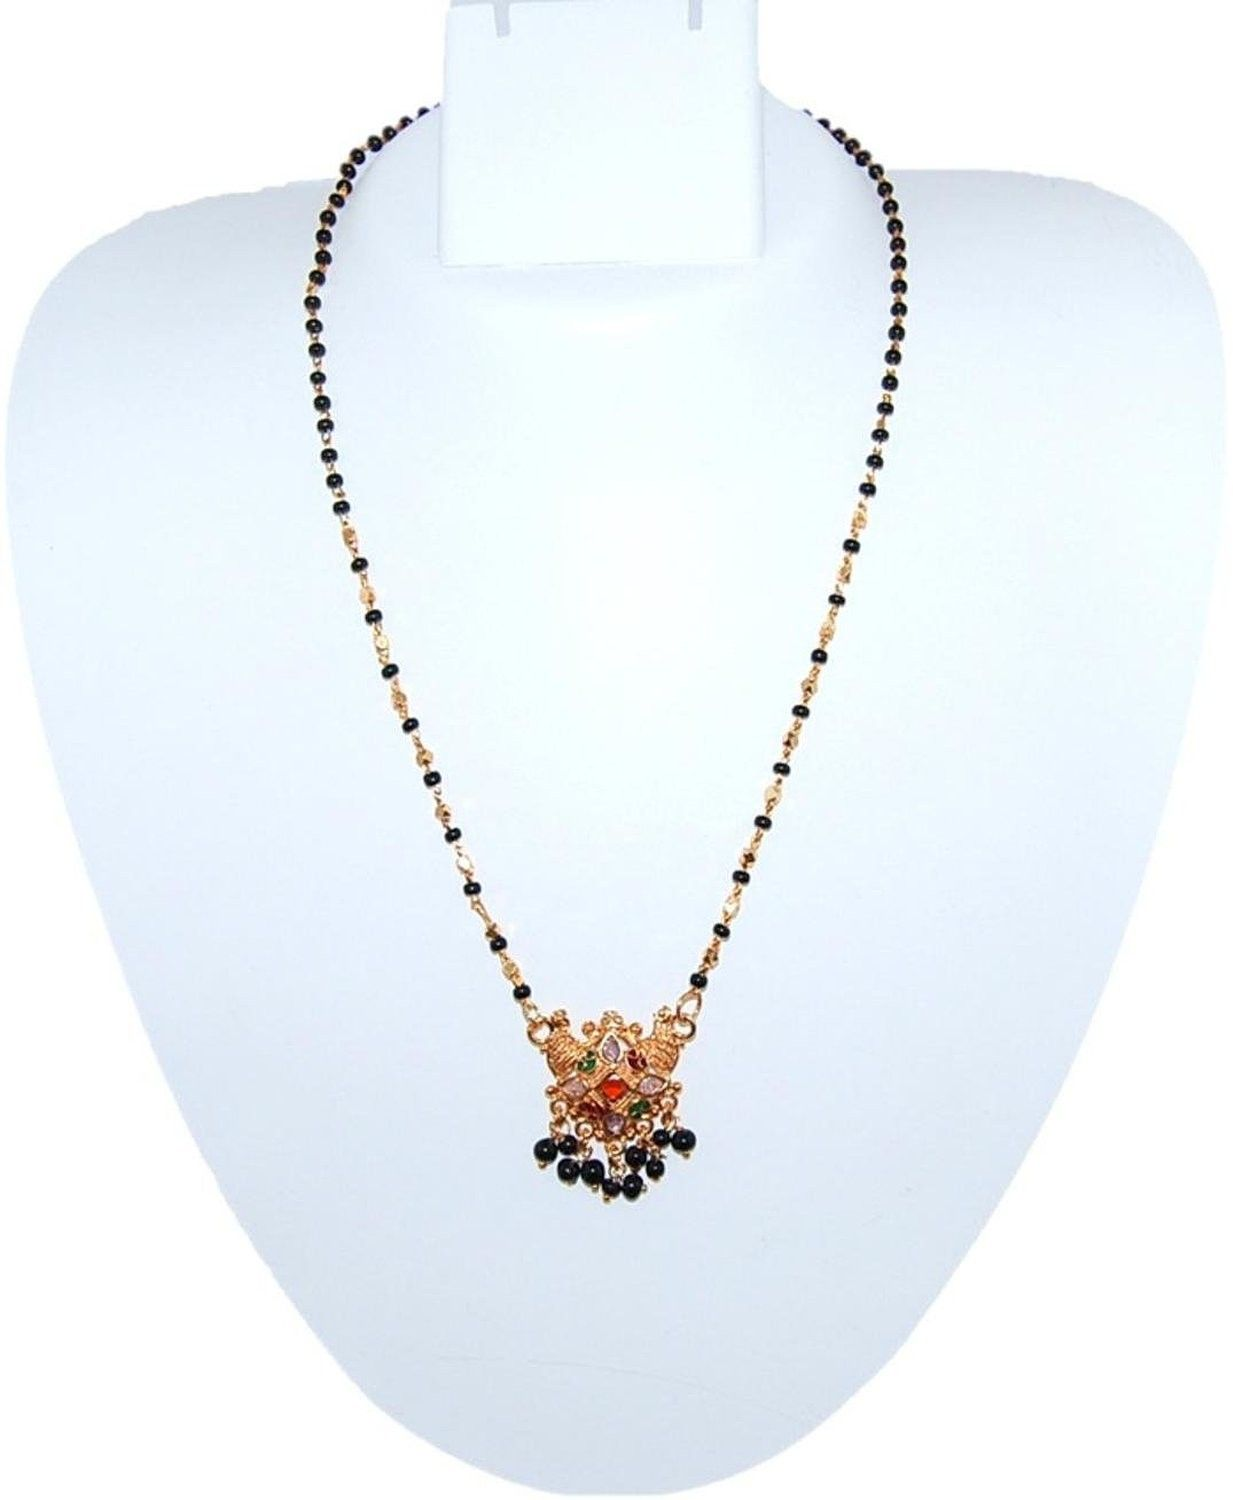 Checkout our awesome product imitation mangalsutra short necklace